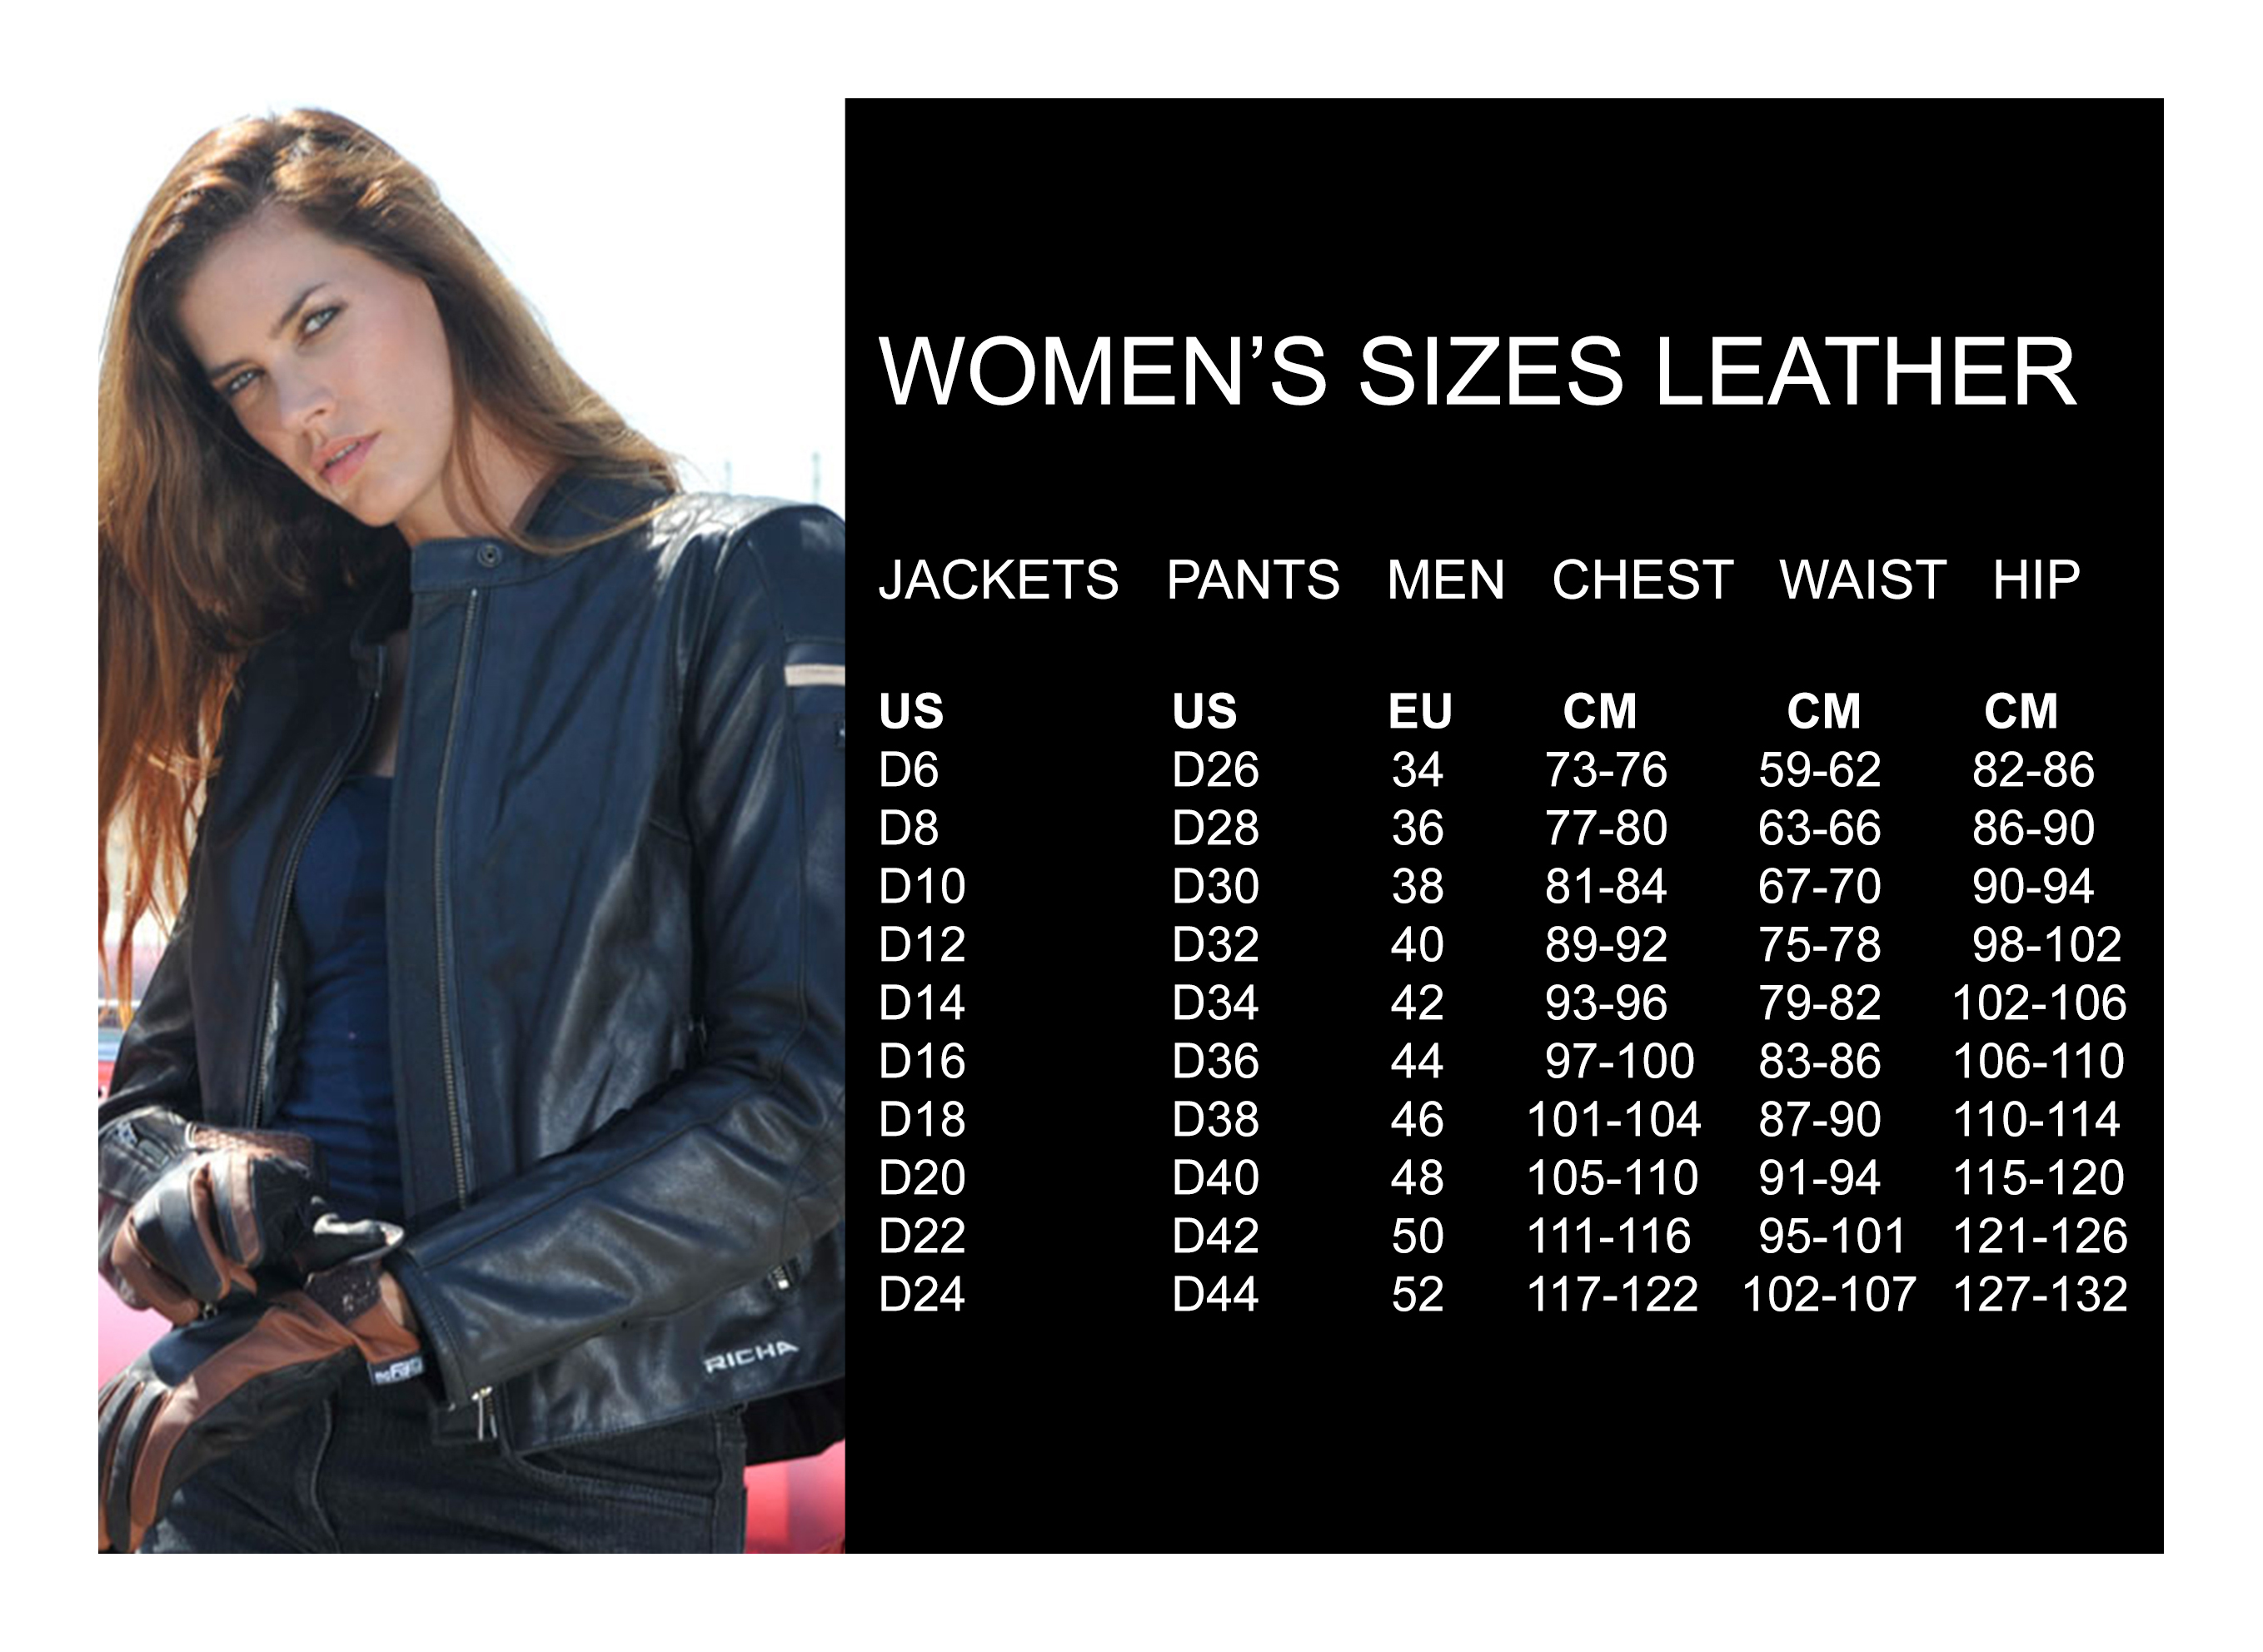 Women's sizes leather